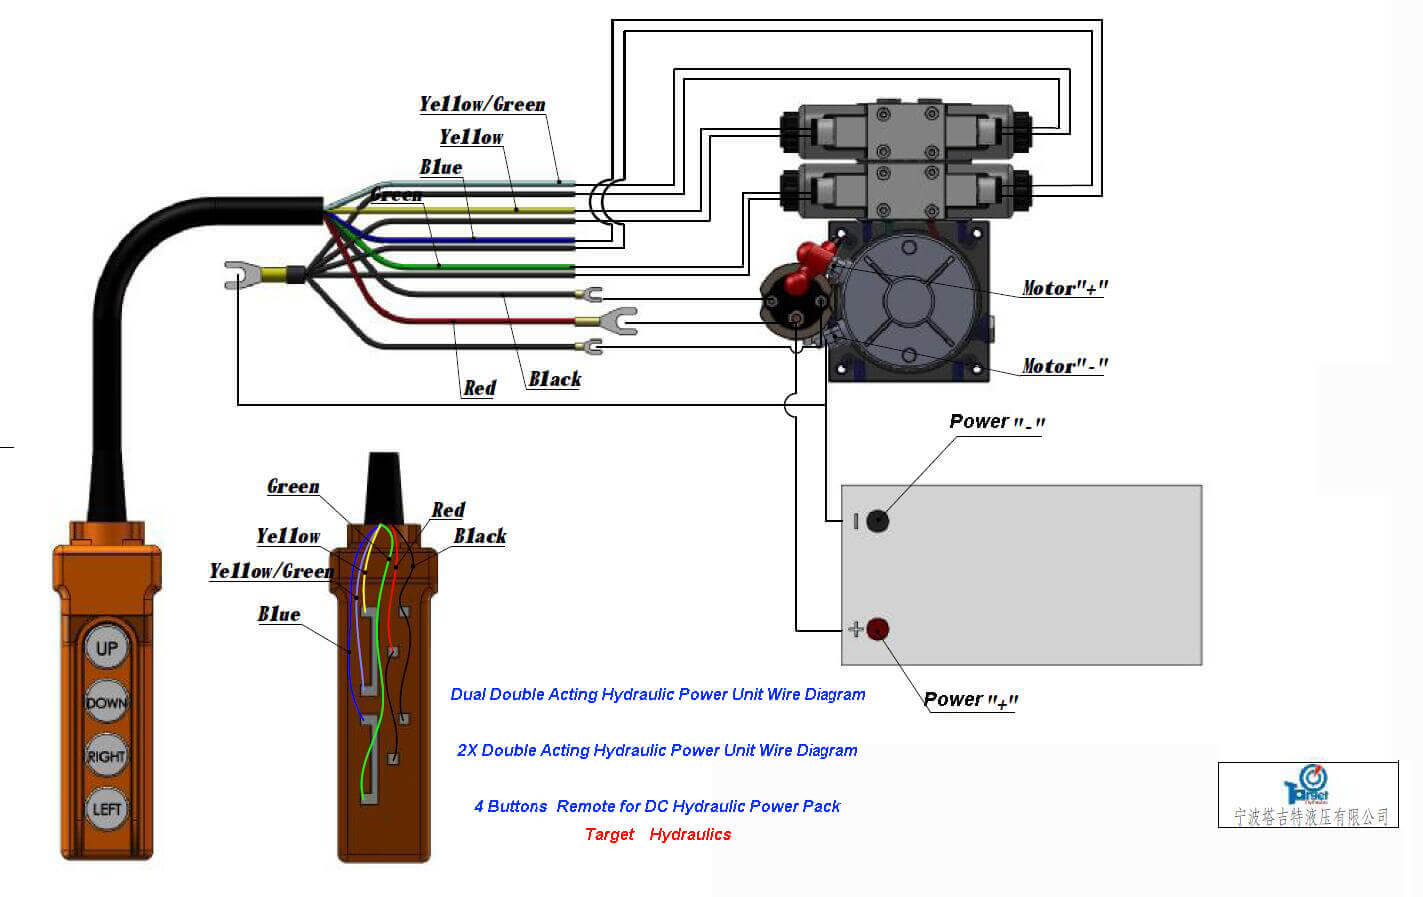 dual-double-acting-hydraulic-cylinder-power-units-wiring-